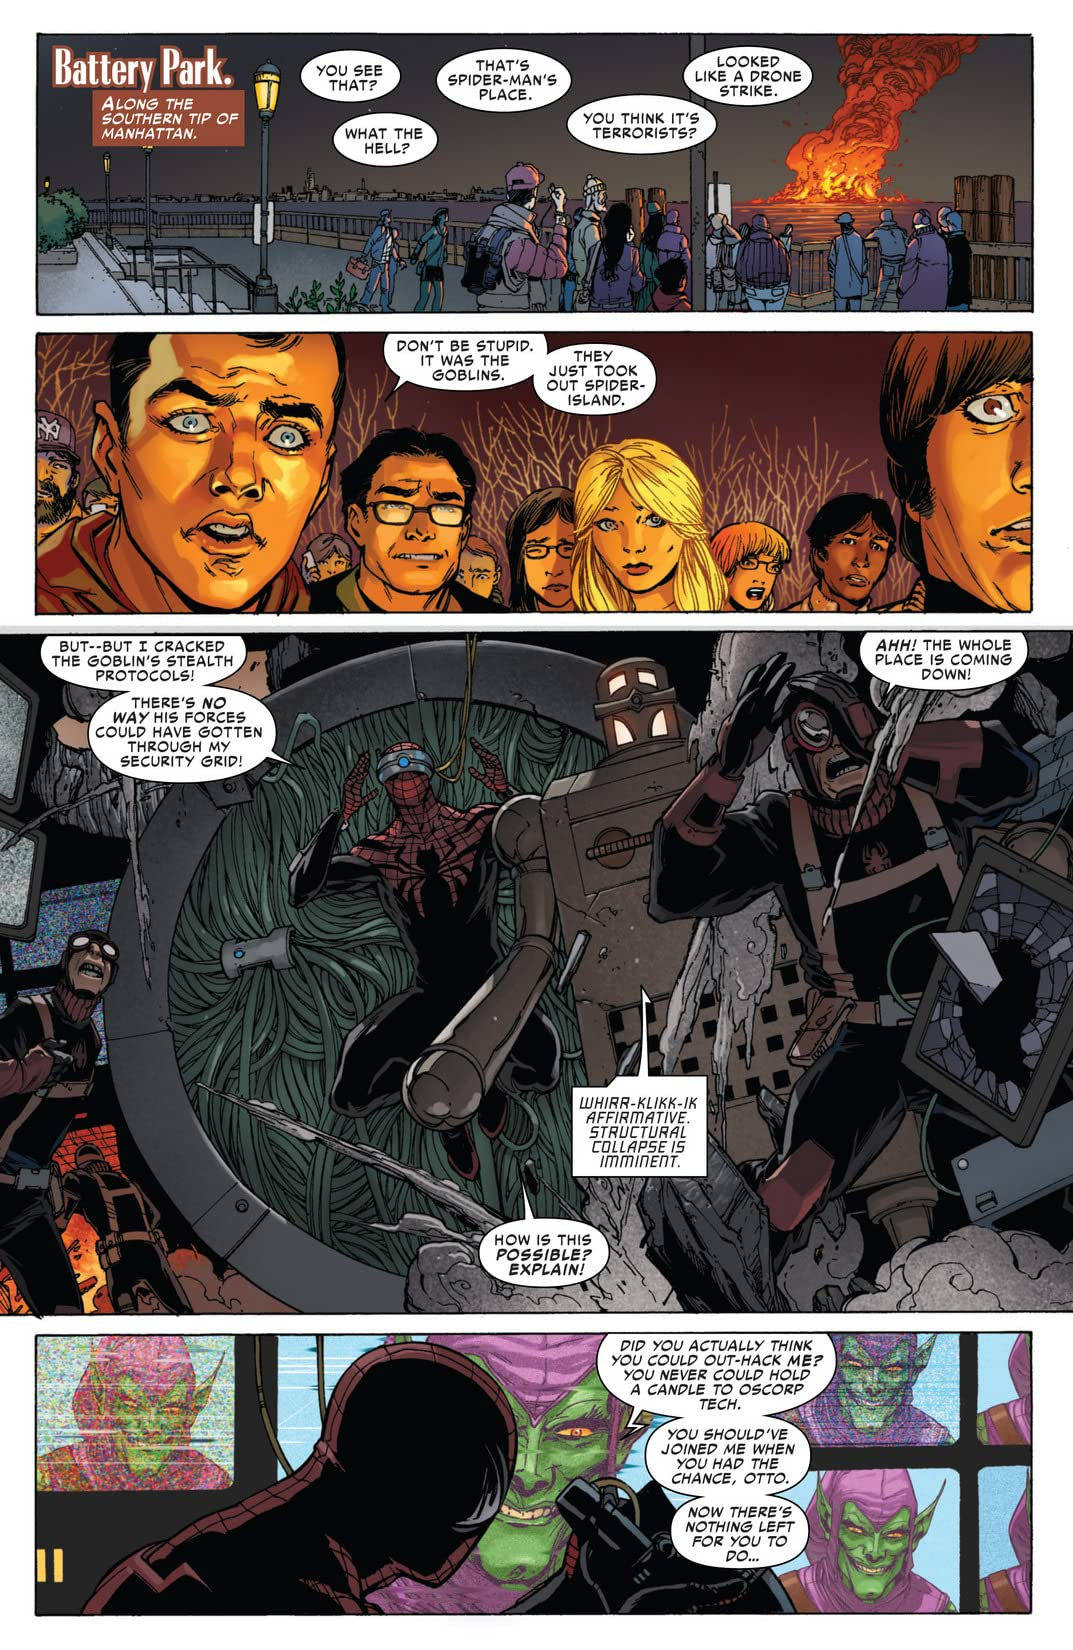 Superior Spider-Man #28